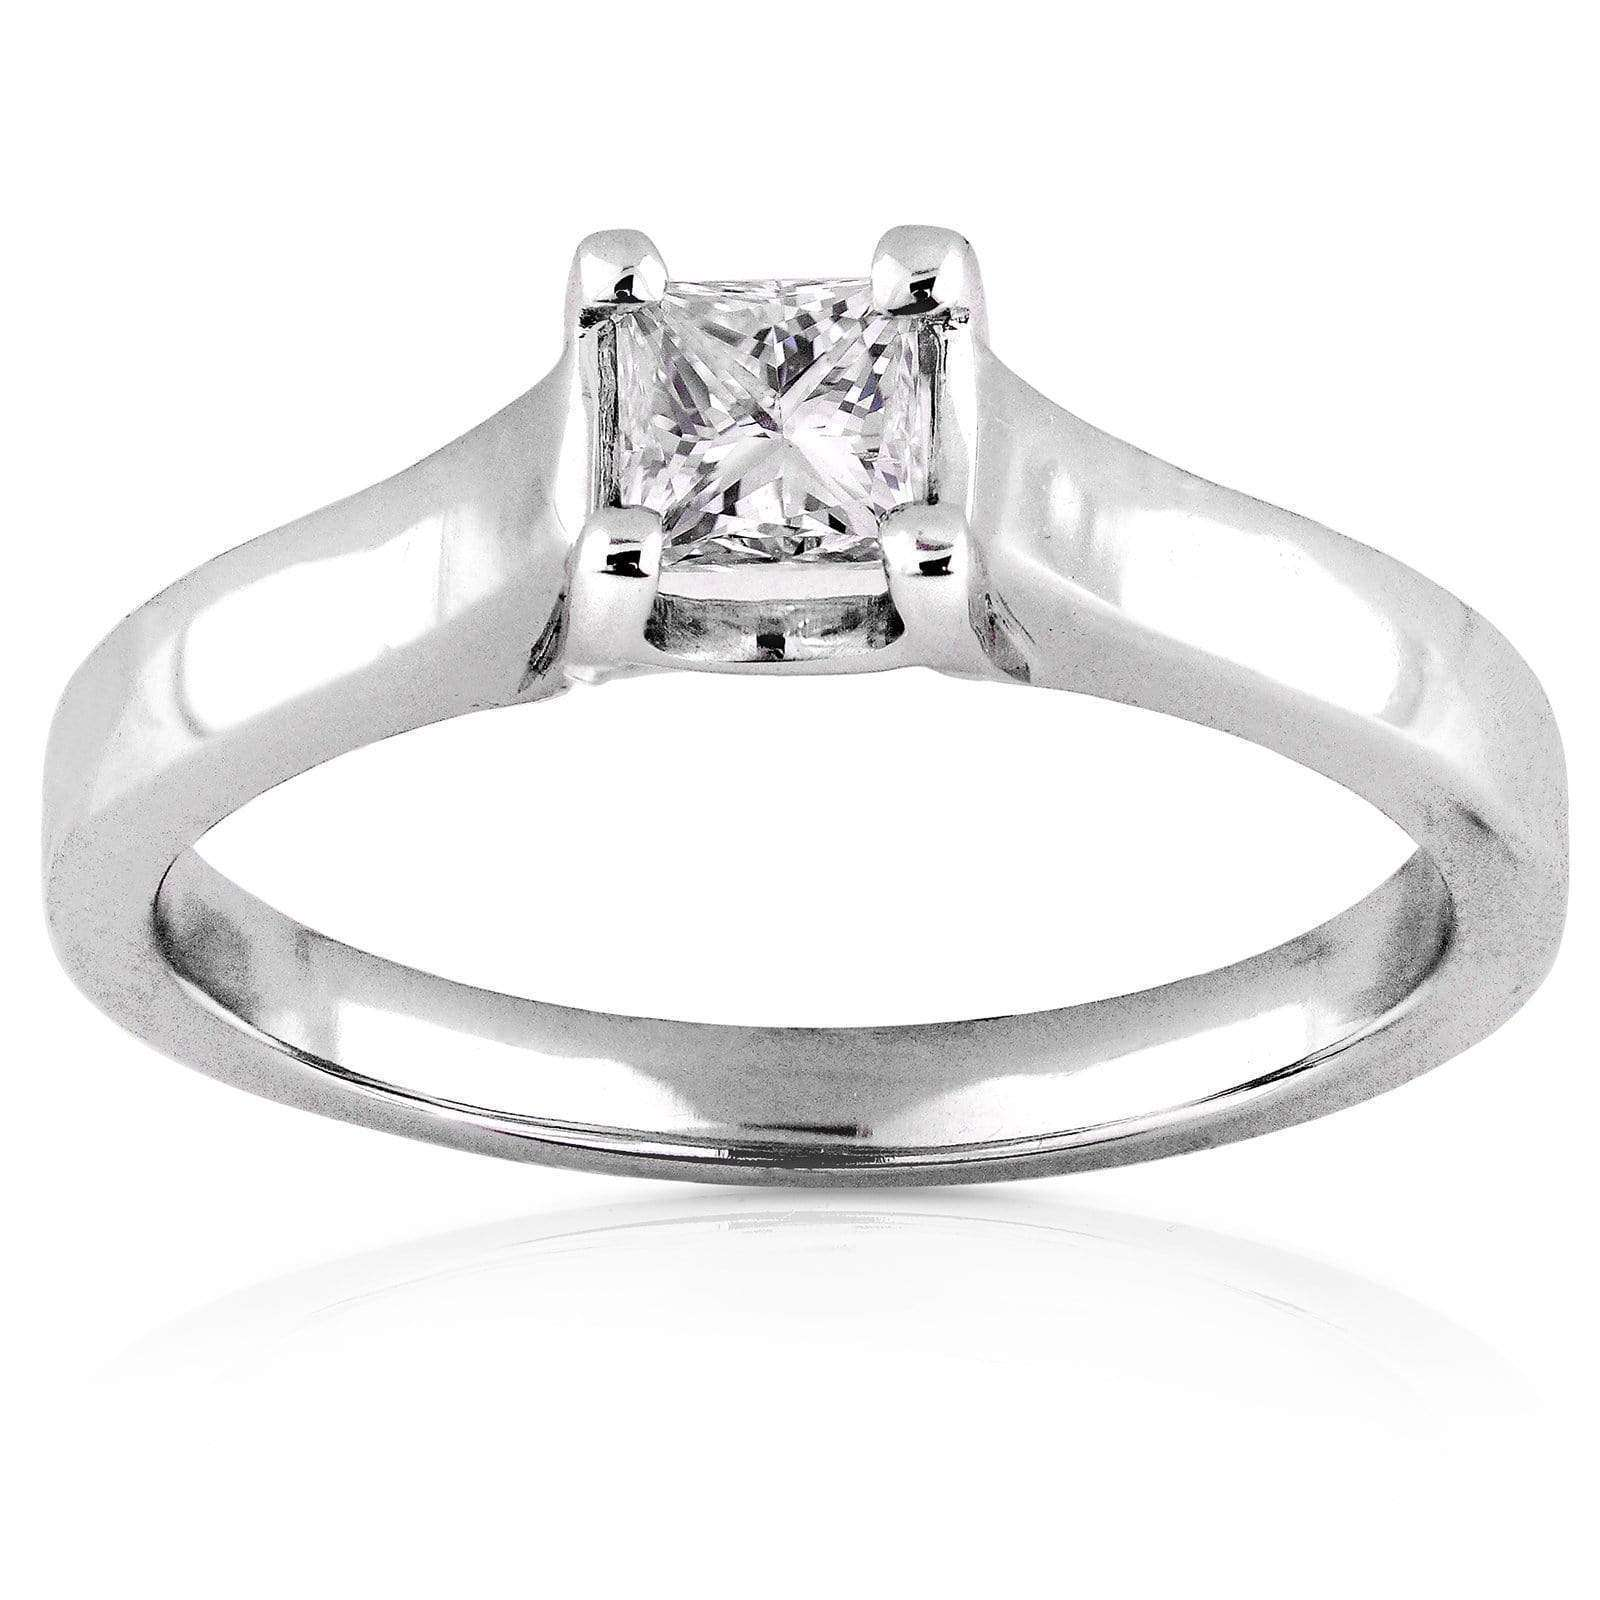 Promos Diamond Engagement Solitaire Ring 1/3 Carat in 14K White Gold - 4